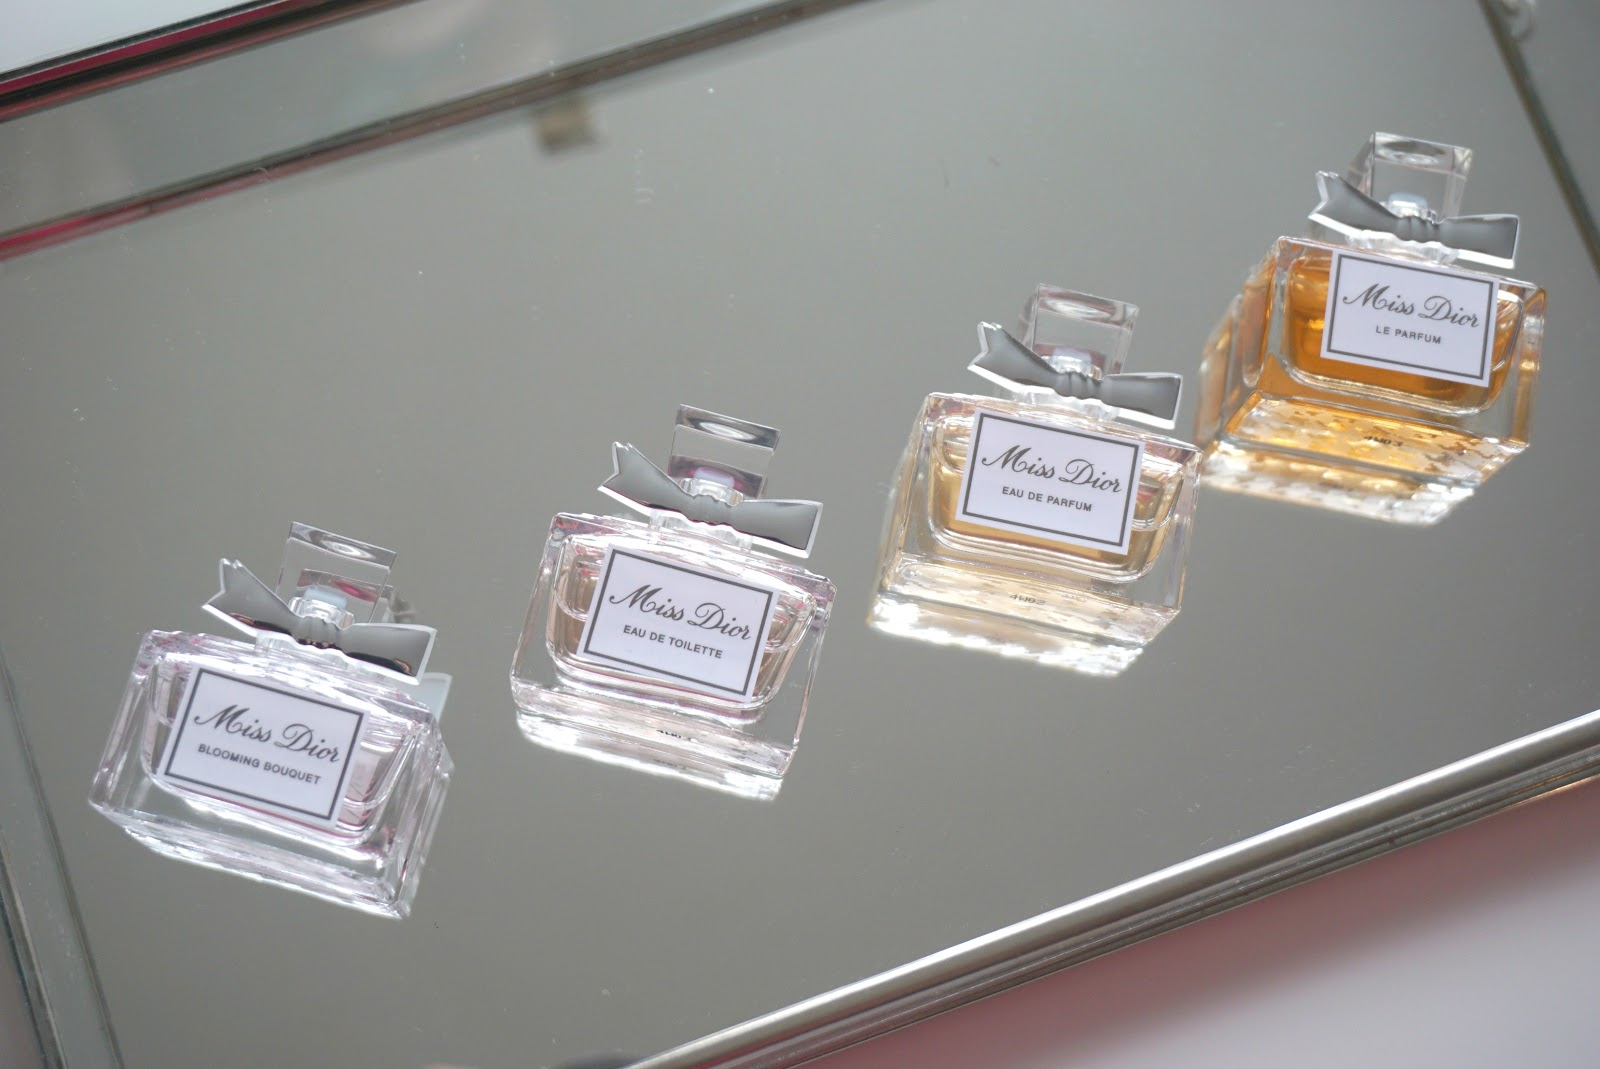 miss dior fragrance review